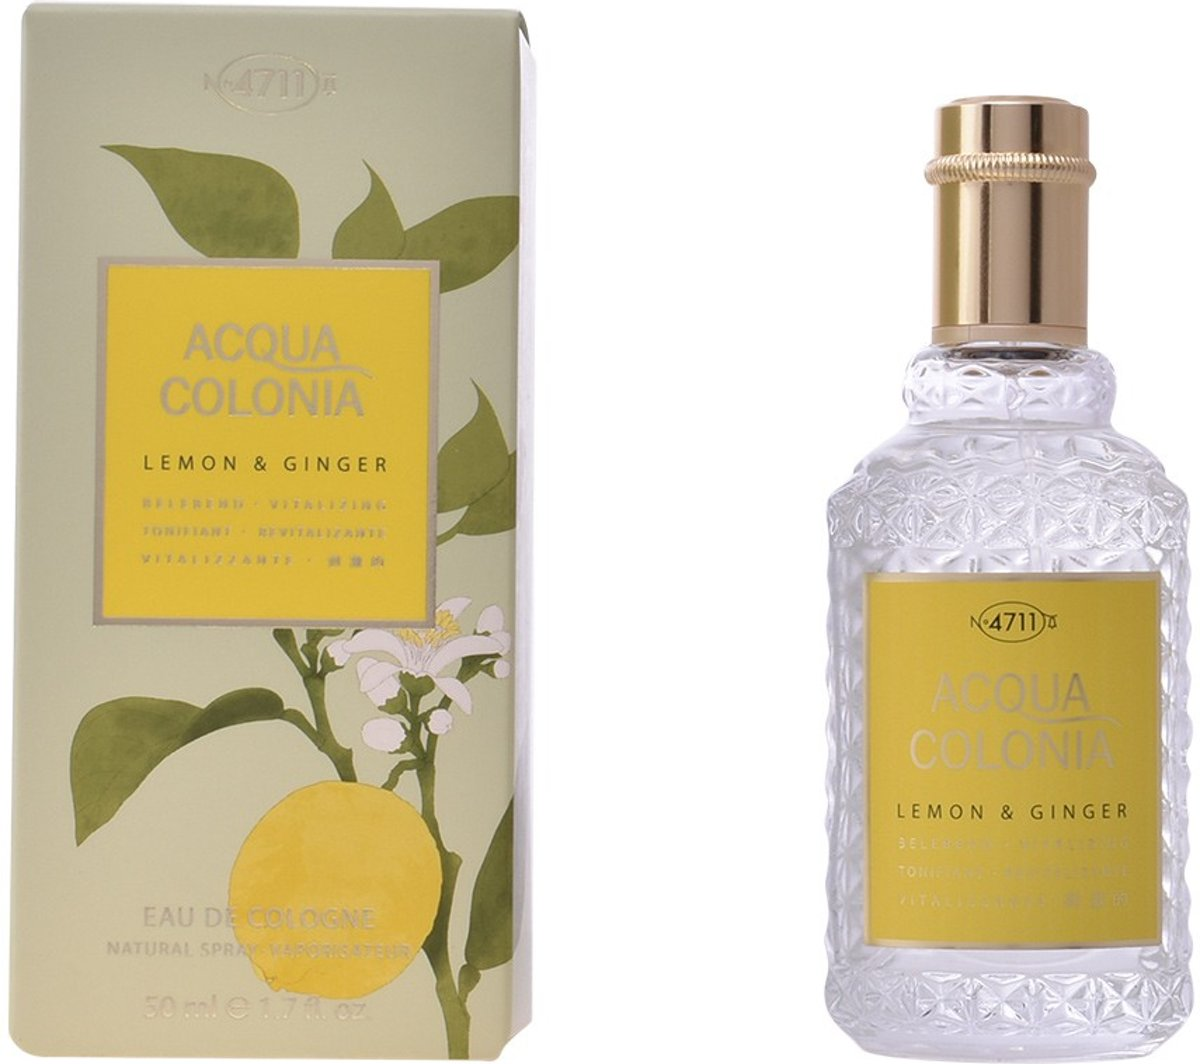 MULTI BUNDEL 2 stuks ACQUA colonia LEMON & GINGER Eau de Cologne splash & spray 50 ml